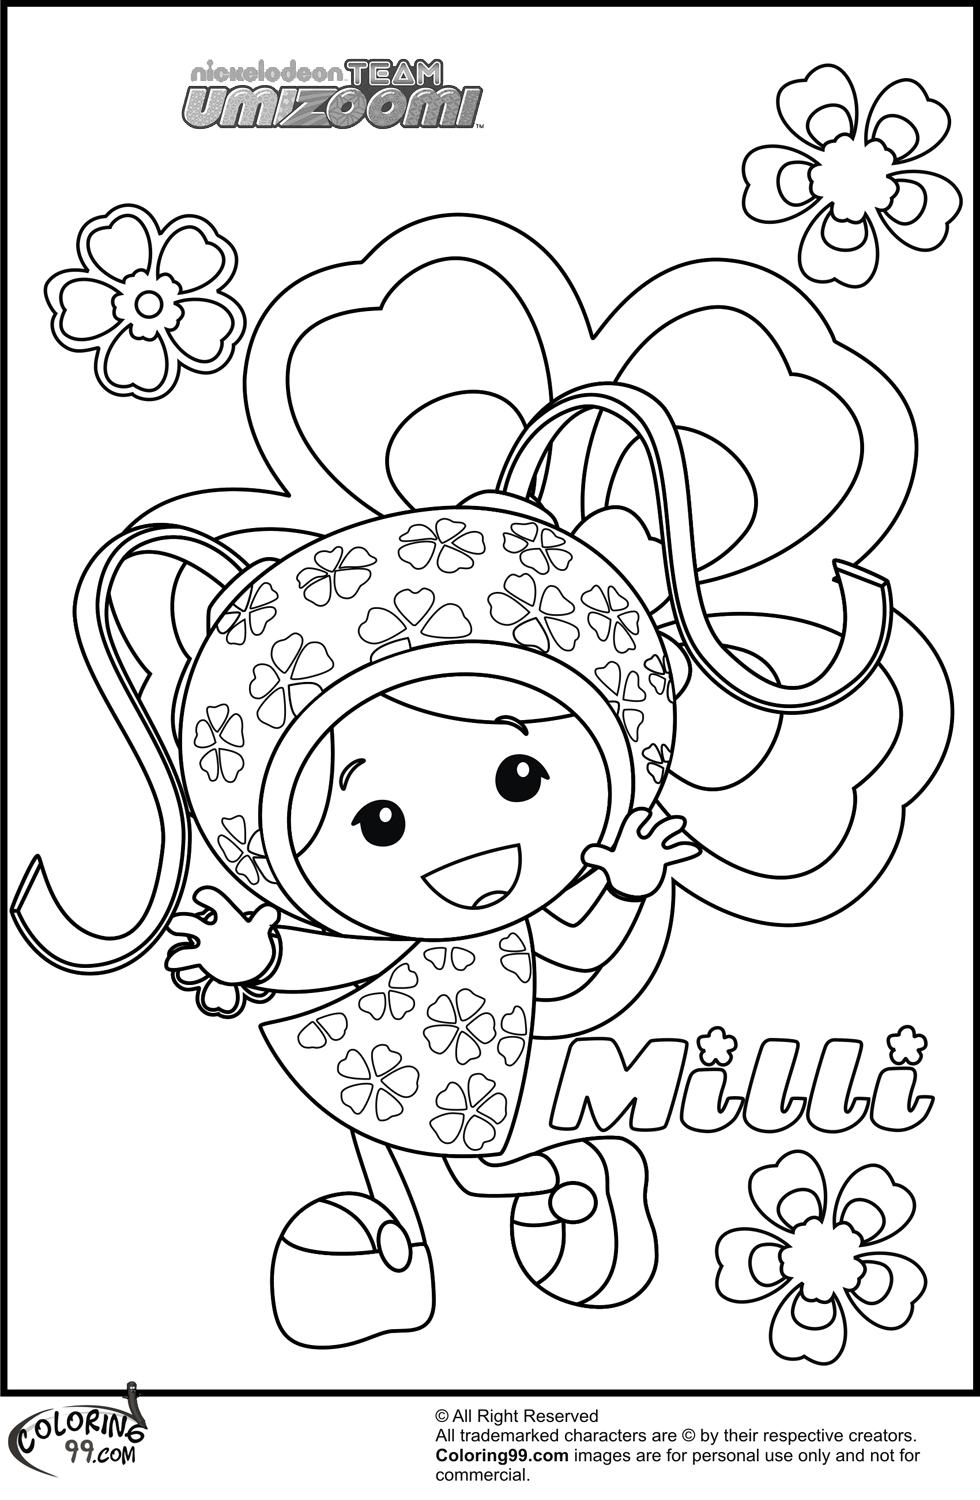 980x1500 Free Team Umizoomi Coloring Pages Printable Entrancing